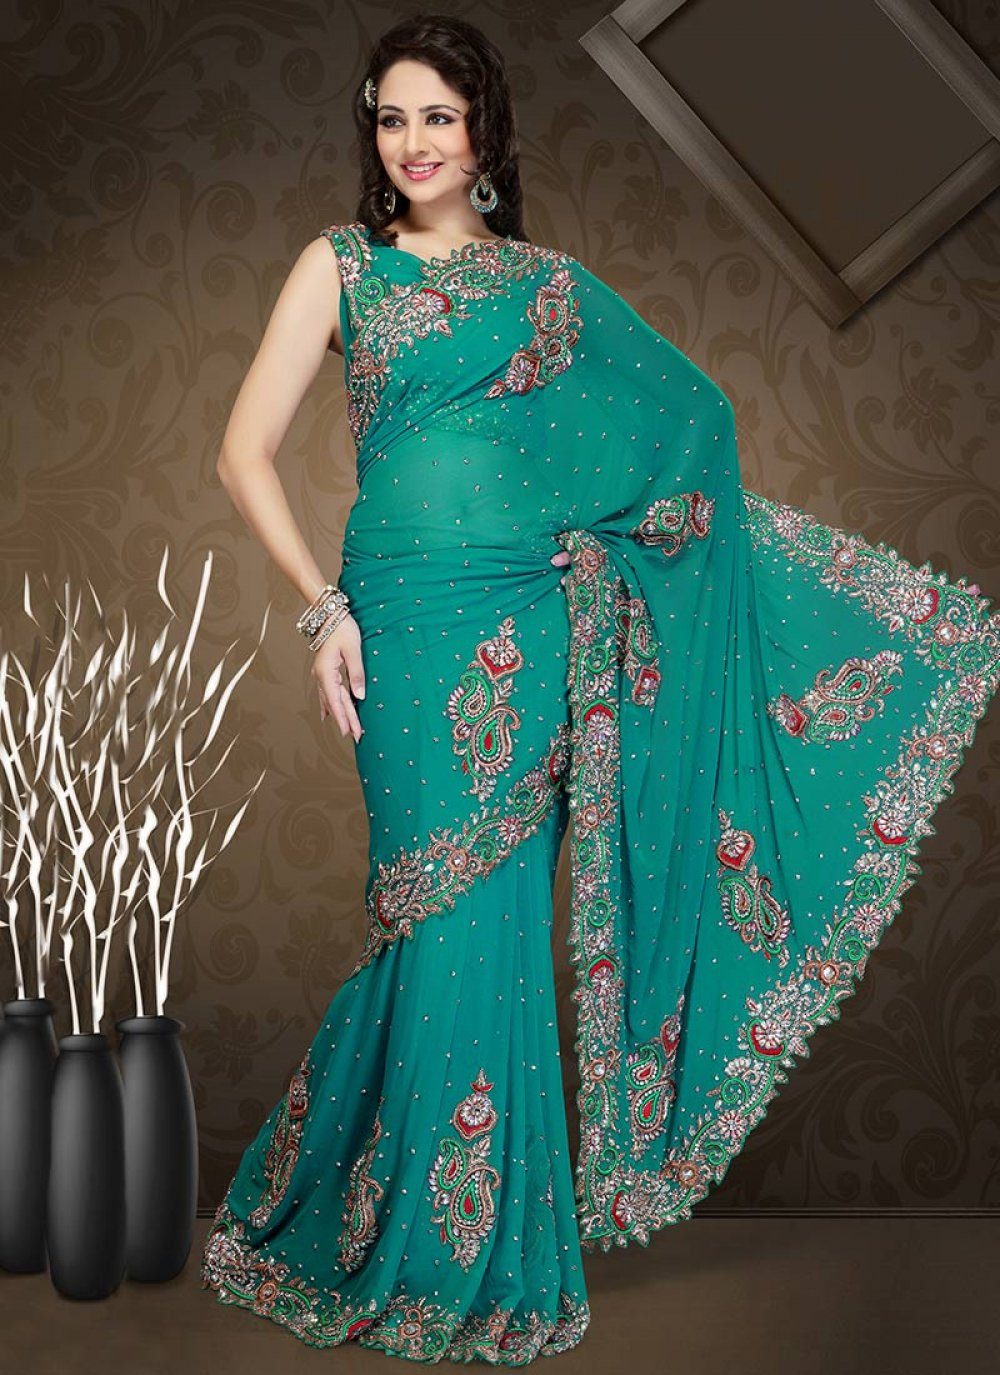 Scalloped Teal Border Georgette Saree